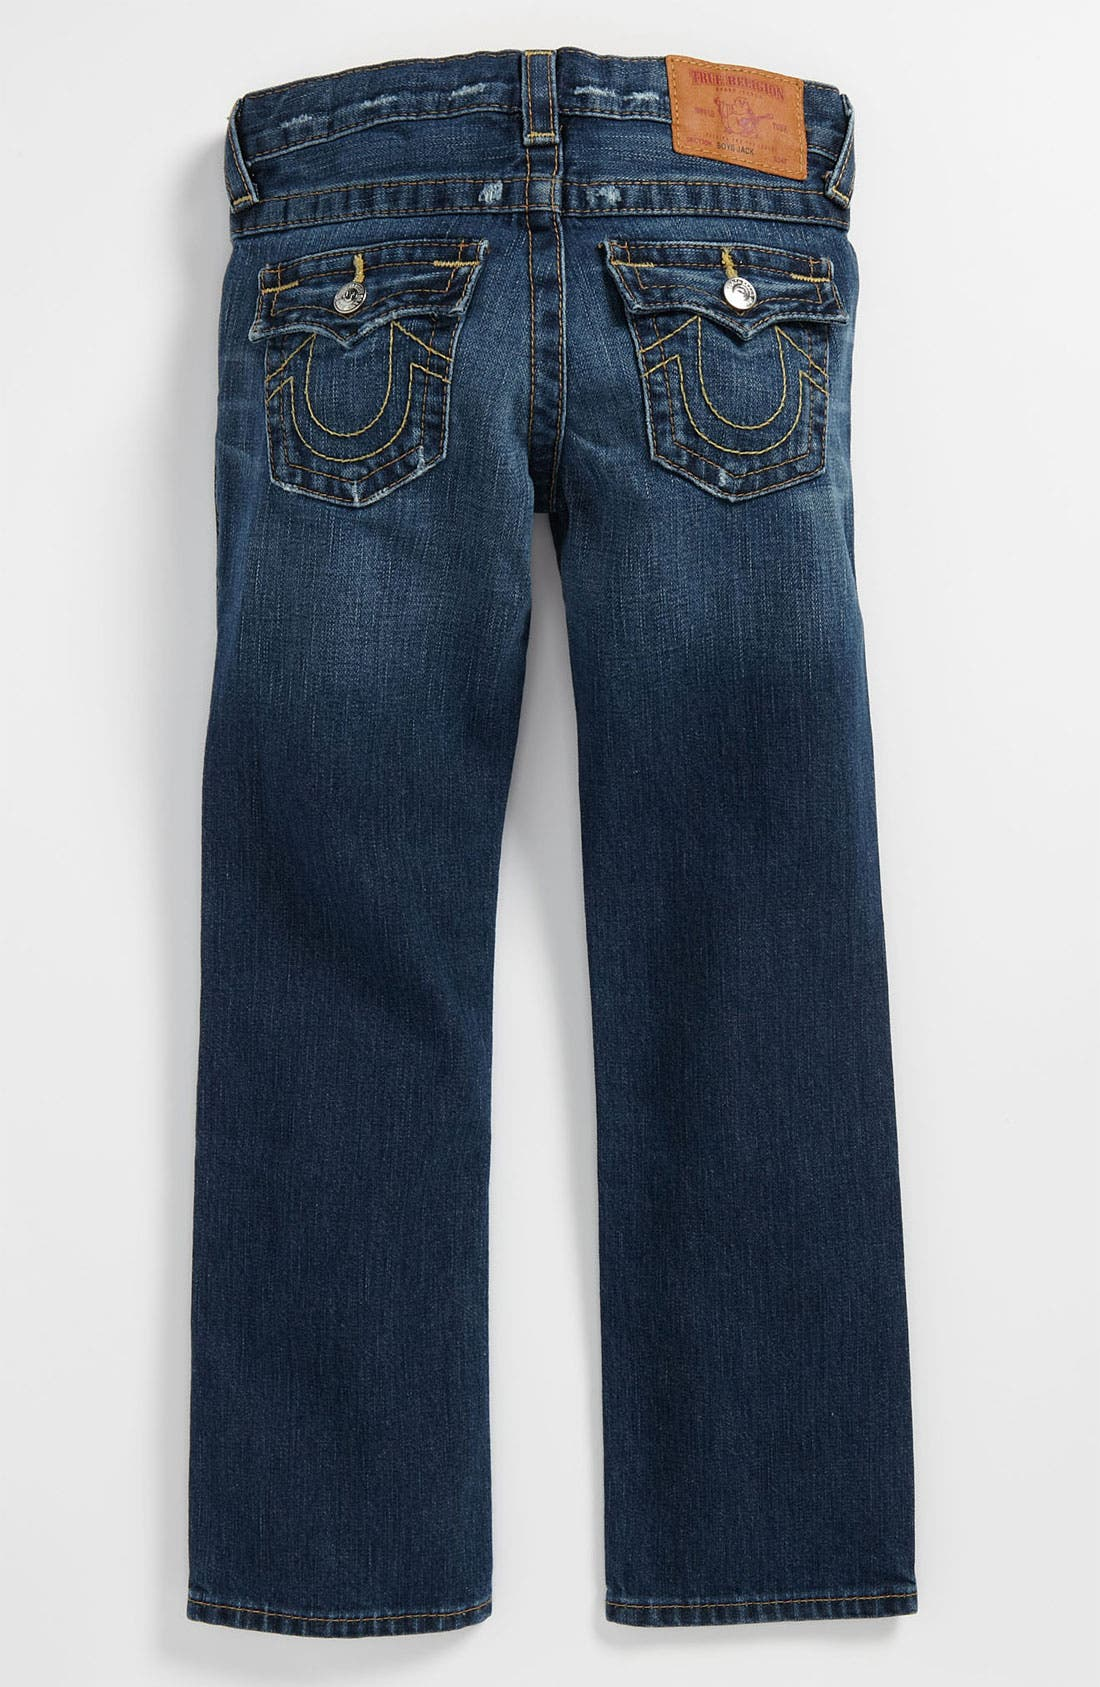 Alternate Image 1 Selected - True Religion Brand Jeans 'Jack Rip & Repair' Jeans (Big Boys)